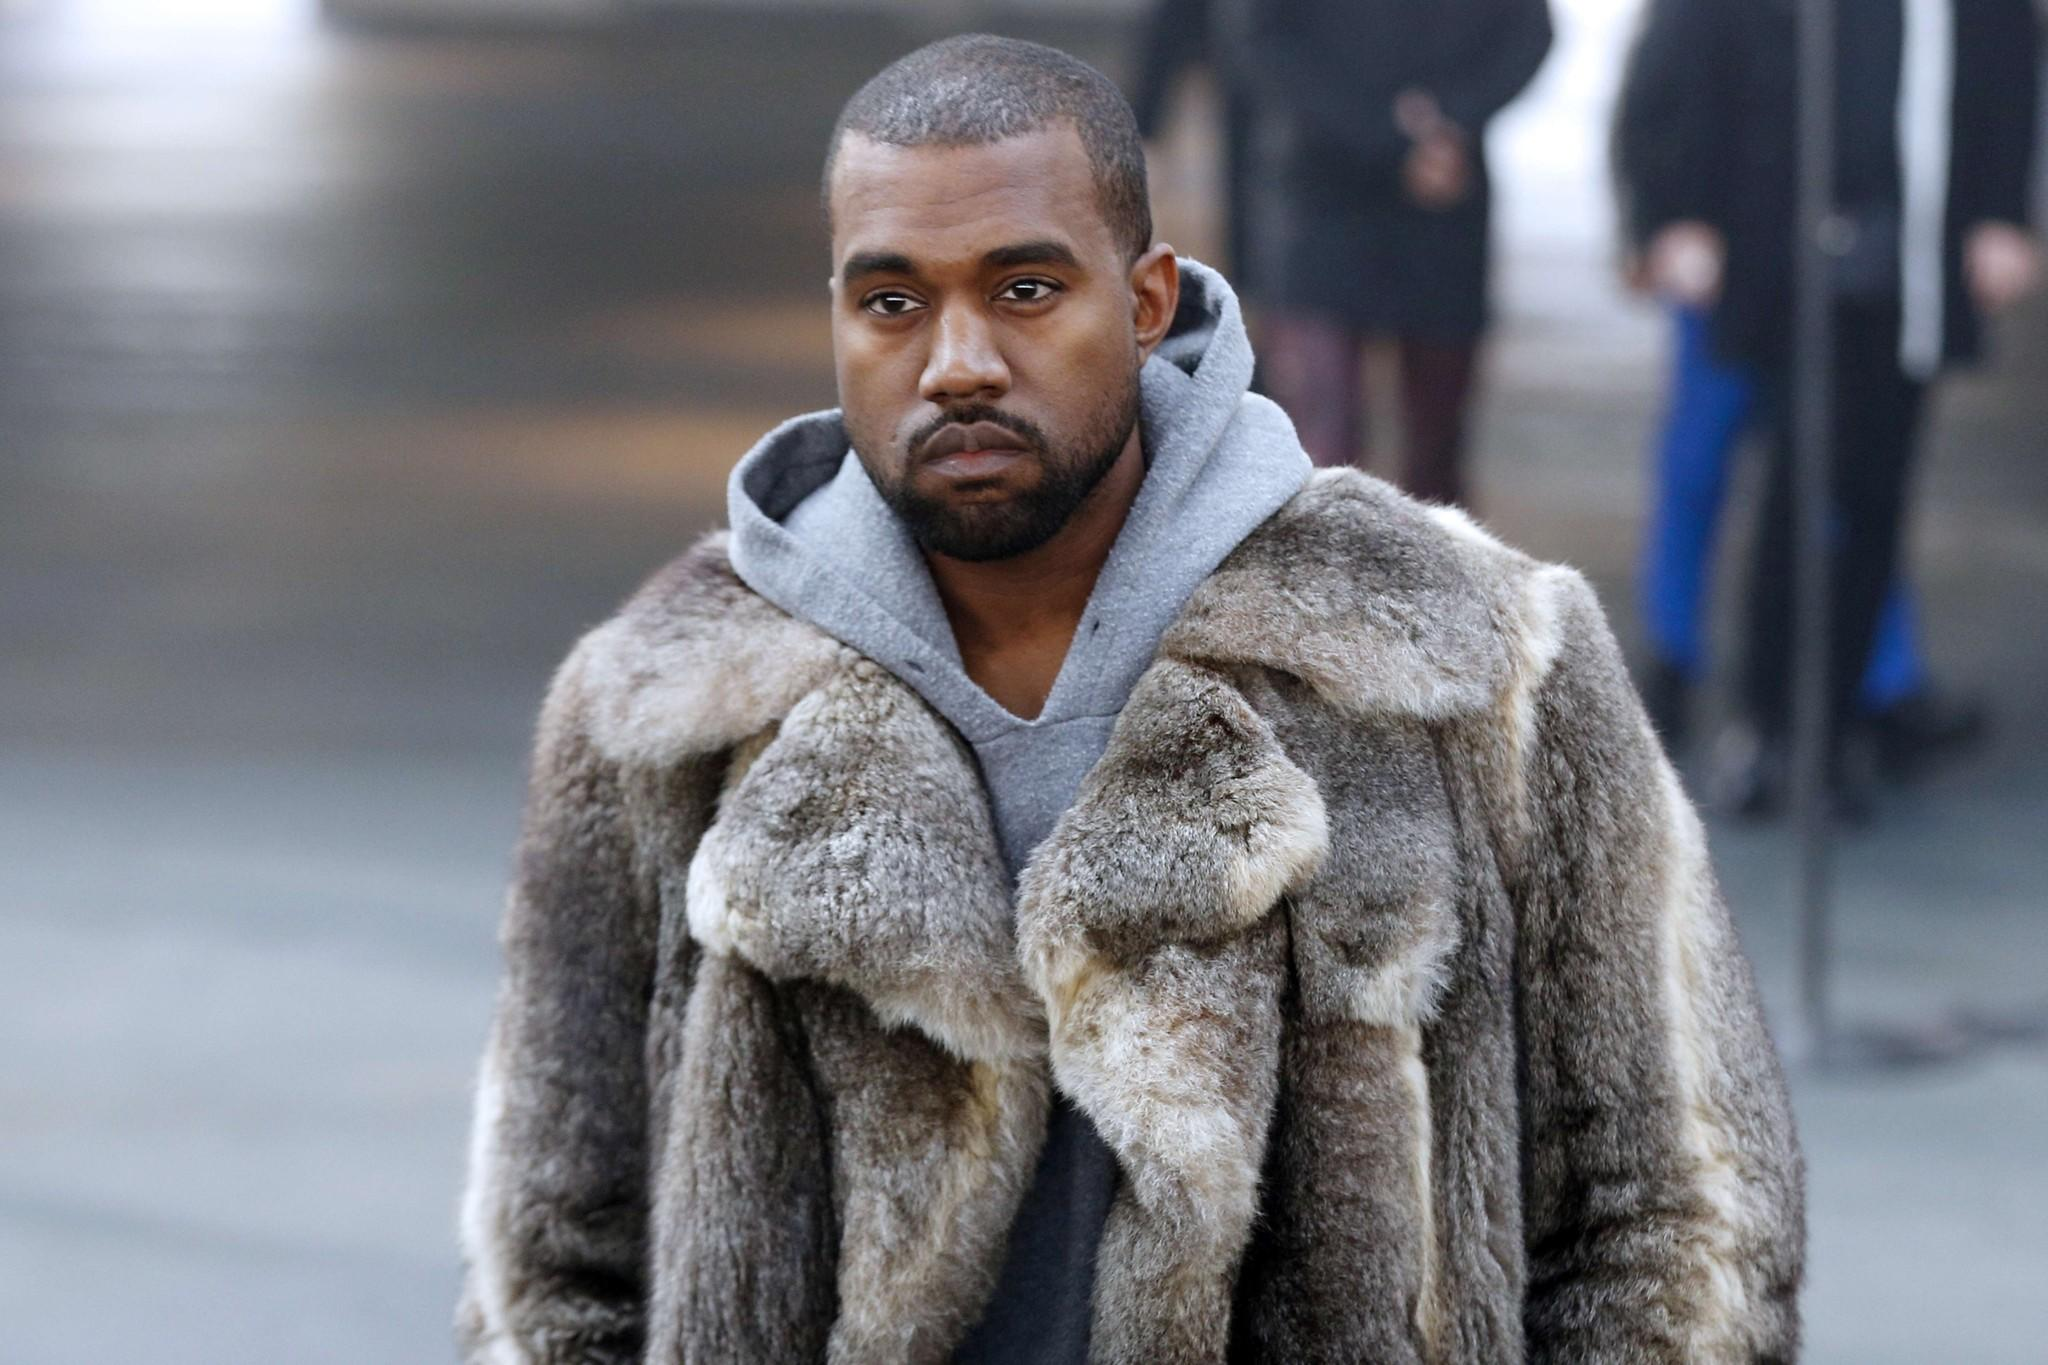 Kanye West brings his Yeezus Tour to Baltimore Arena on Feb. 14.